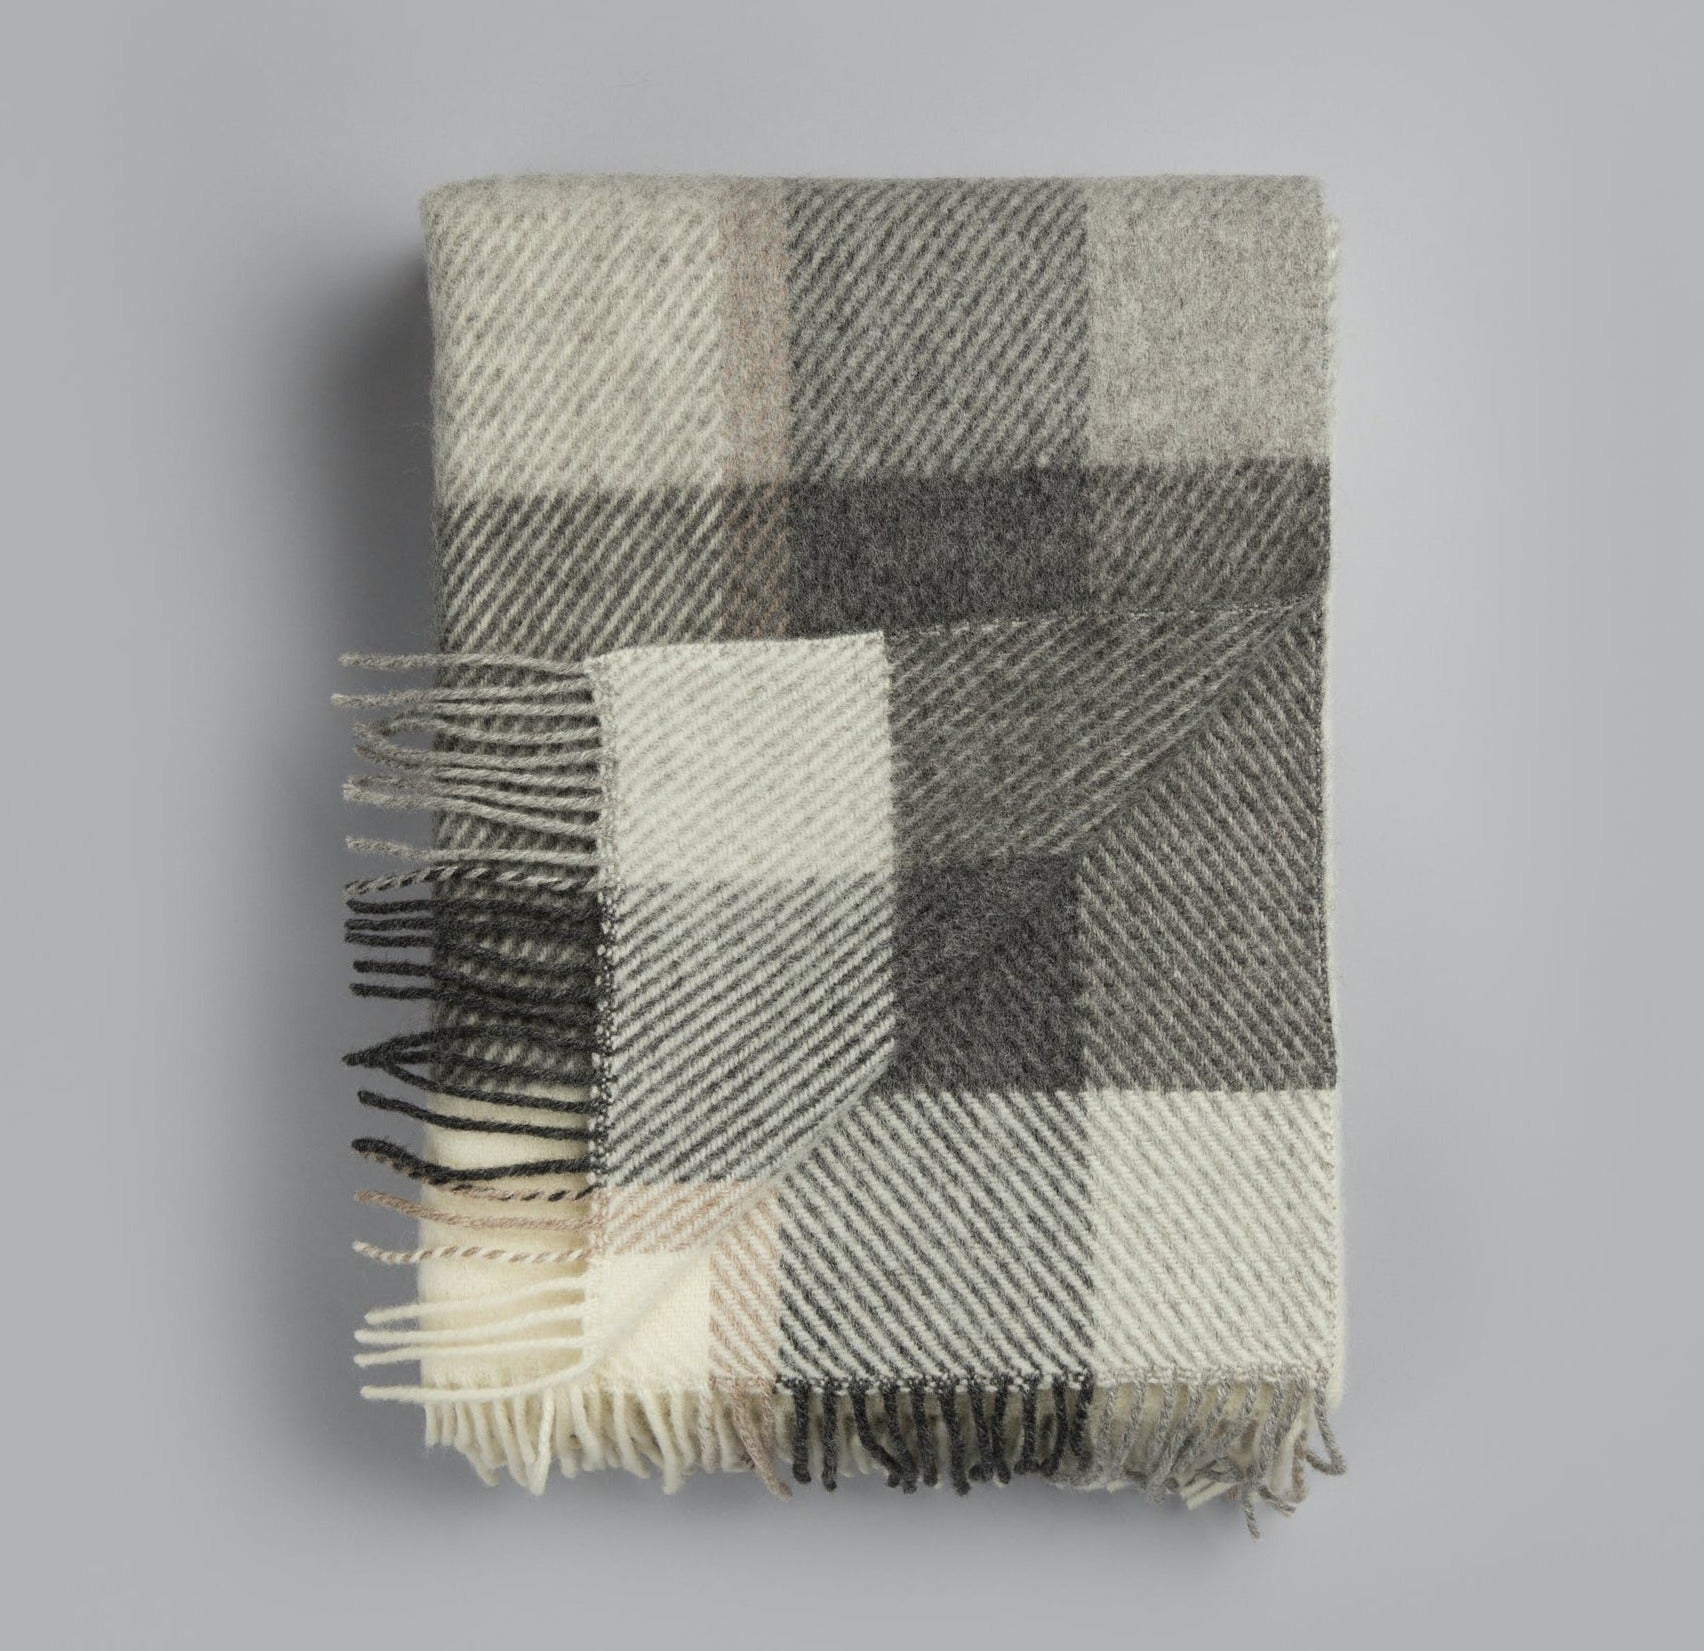 Roros Tweed - Myrull Throw